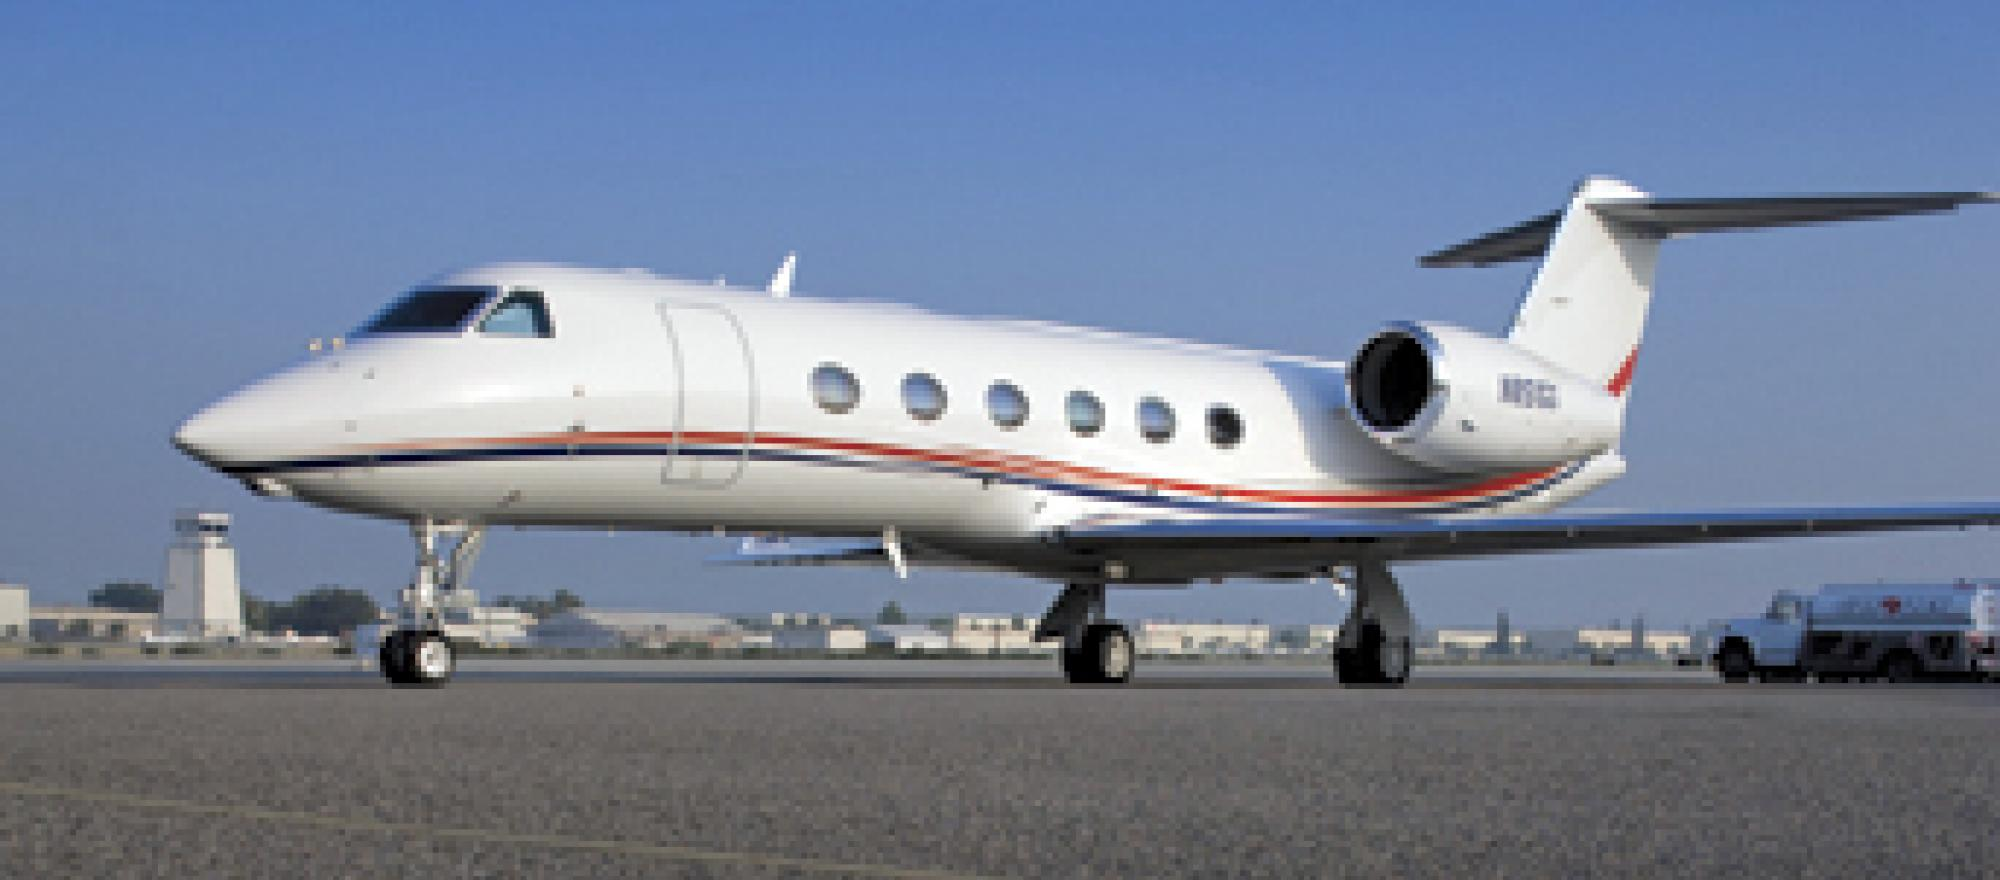 Headed for Hawaii? A specially outfitted Gulfstream G450 can take you there i